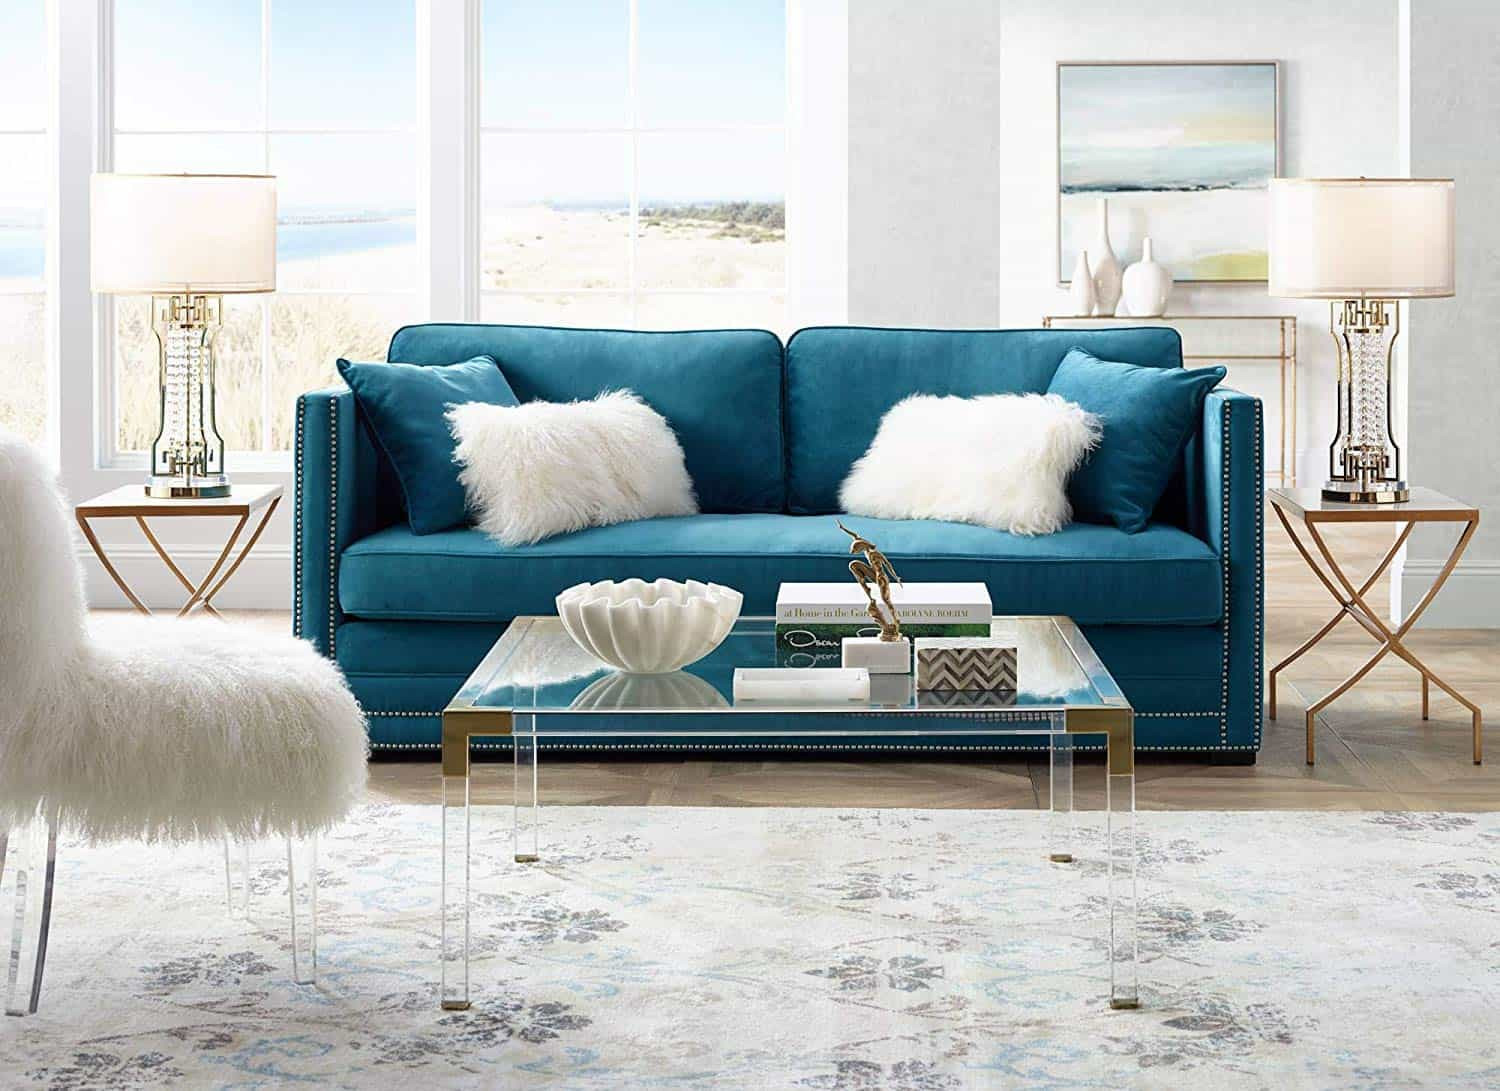 Table In Living Room  Chic Acrylic Coffee Tables For A Elegant Living Room